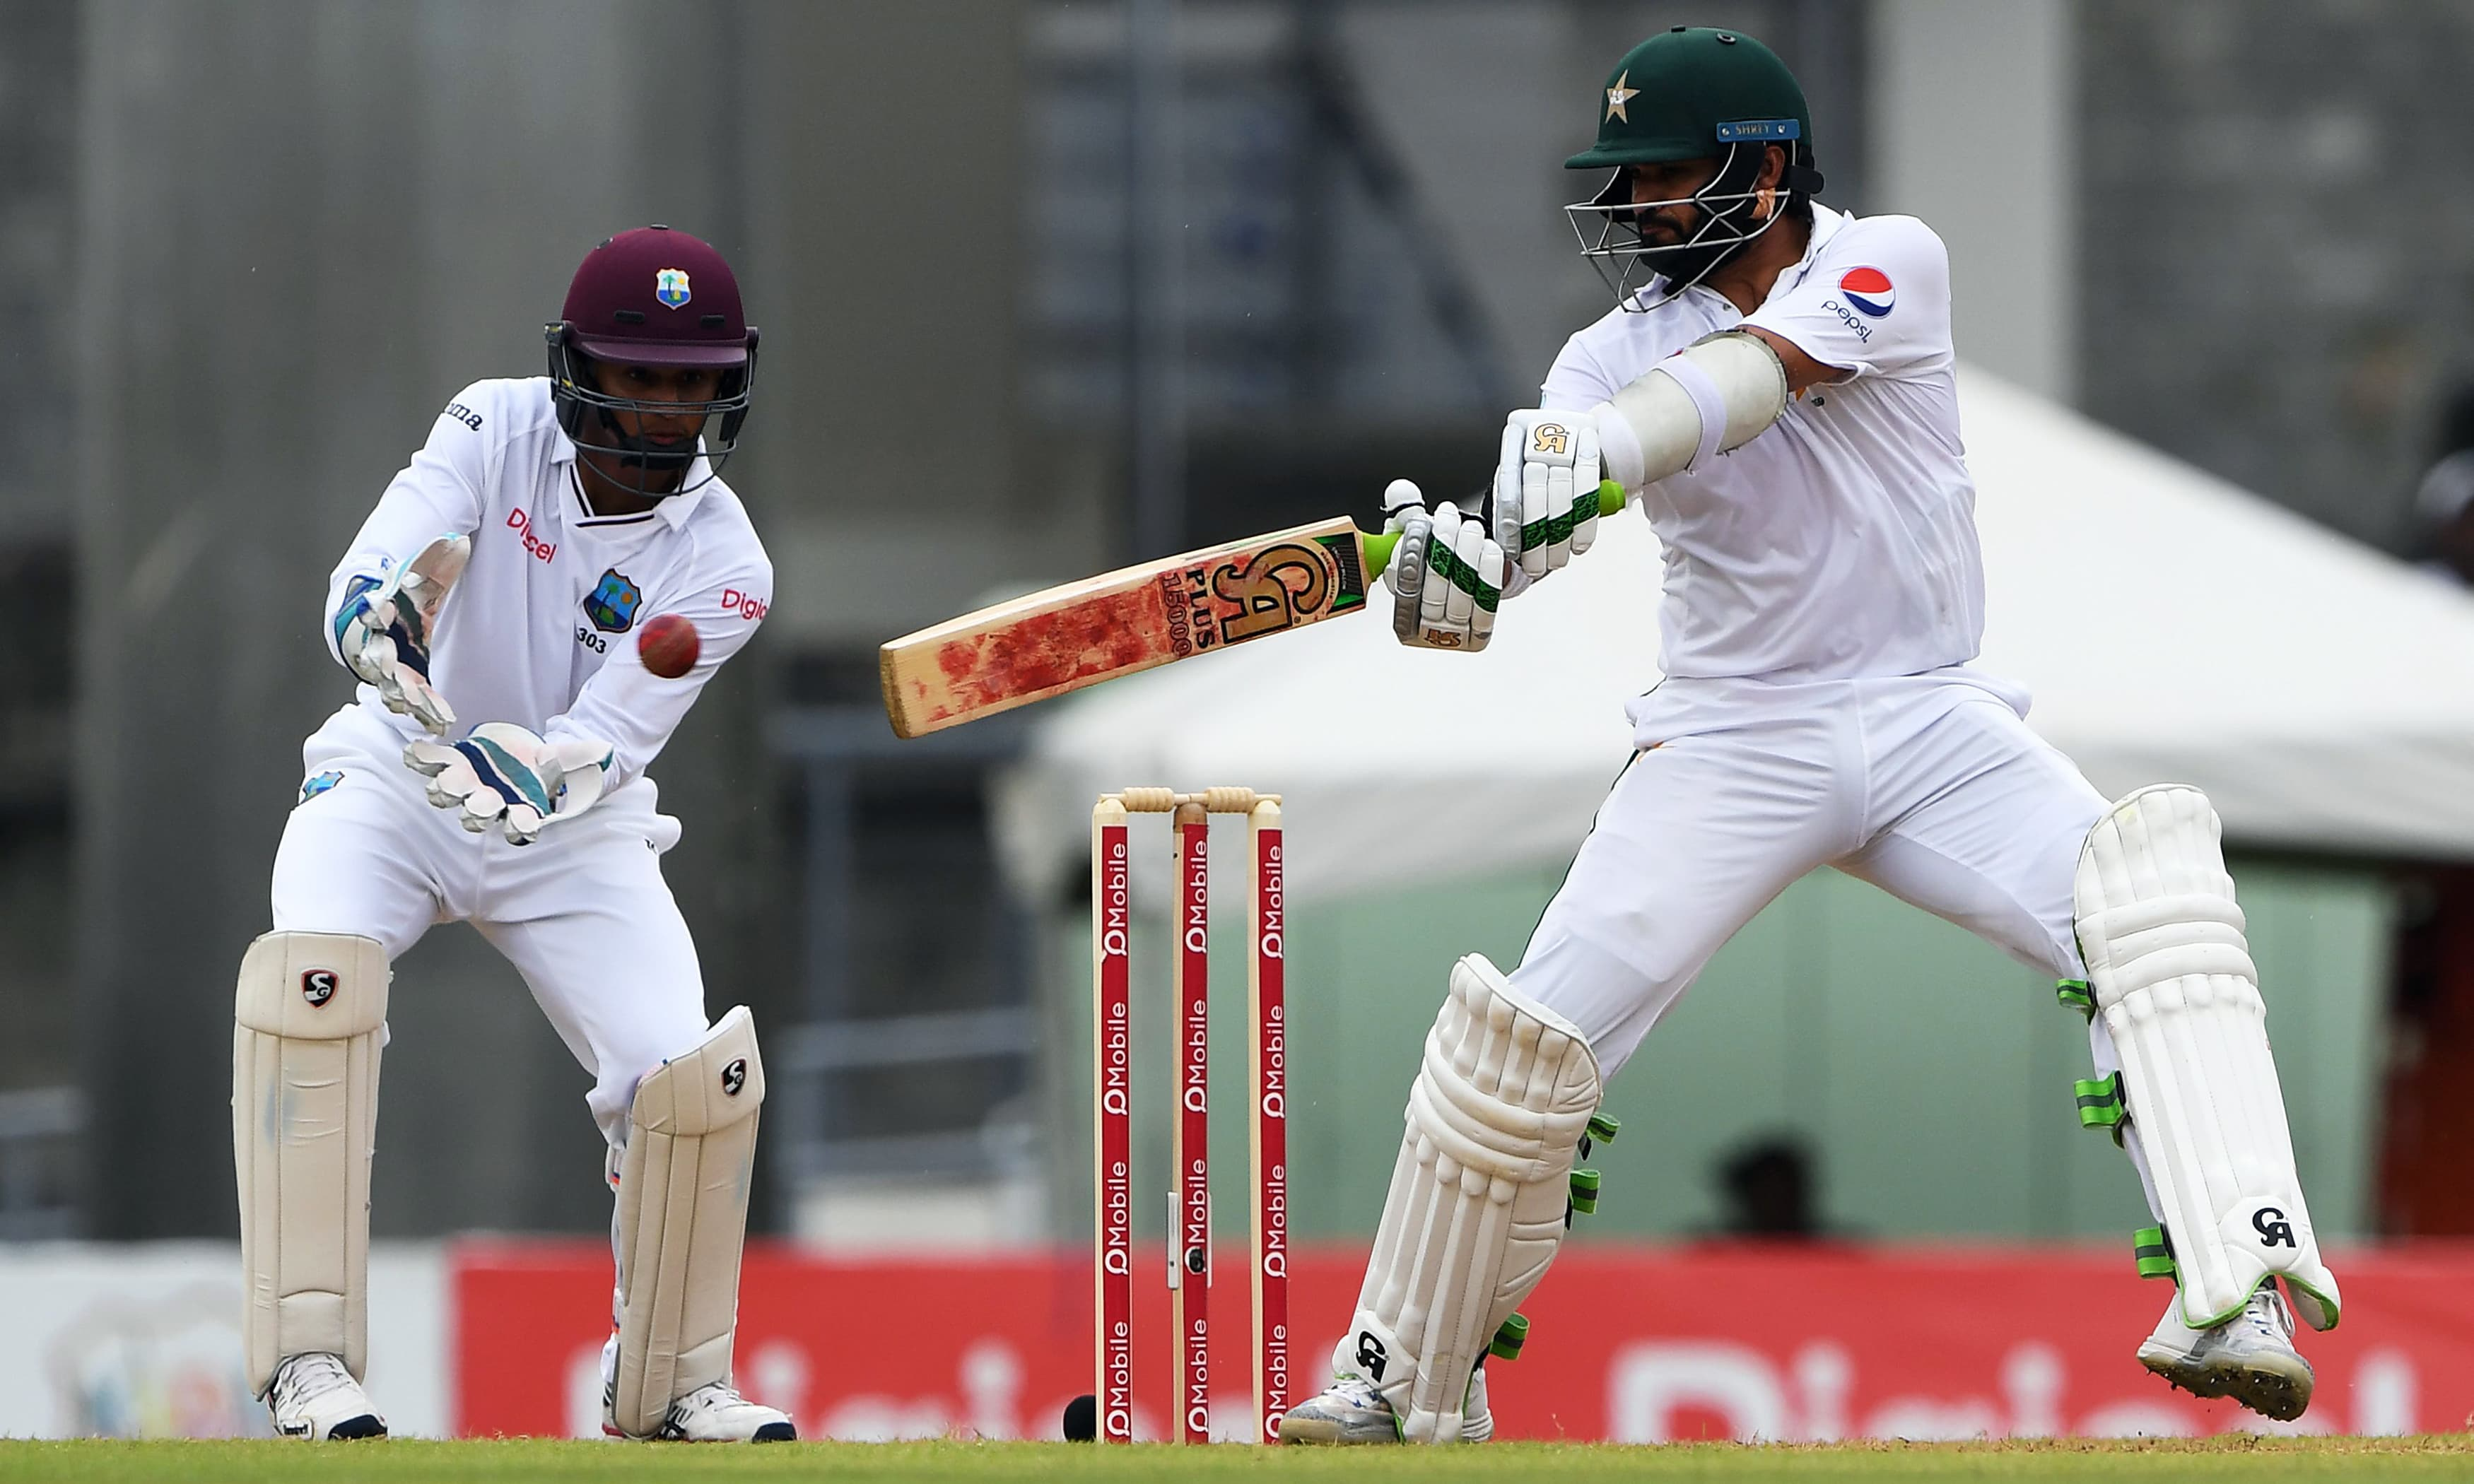 Azhar Ali plays a cover shot as Shai Hope looks on. —AFP